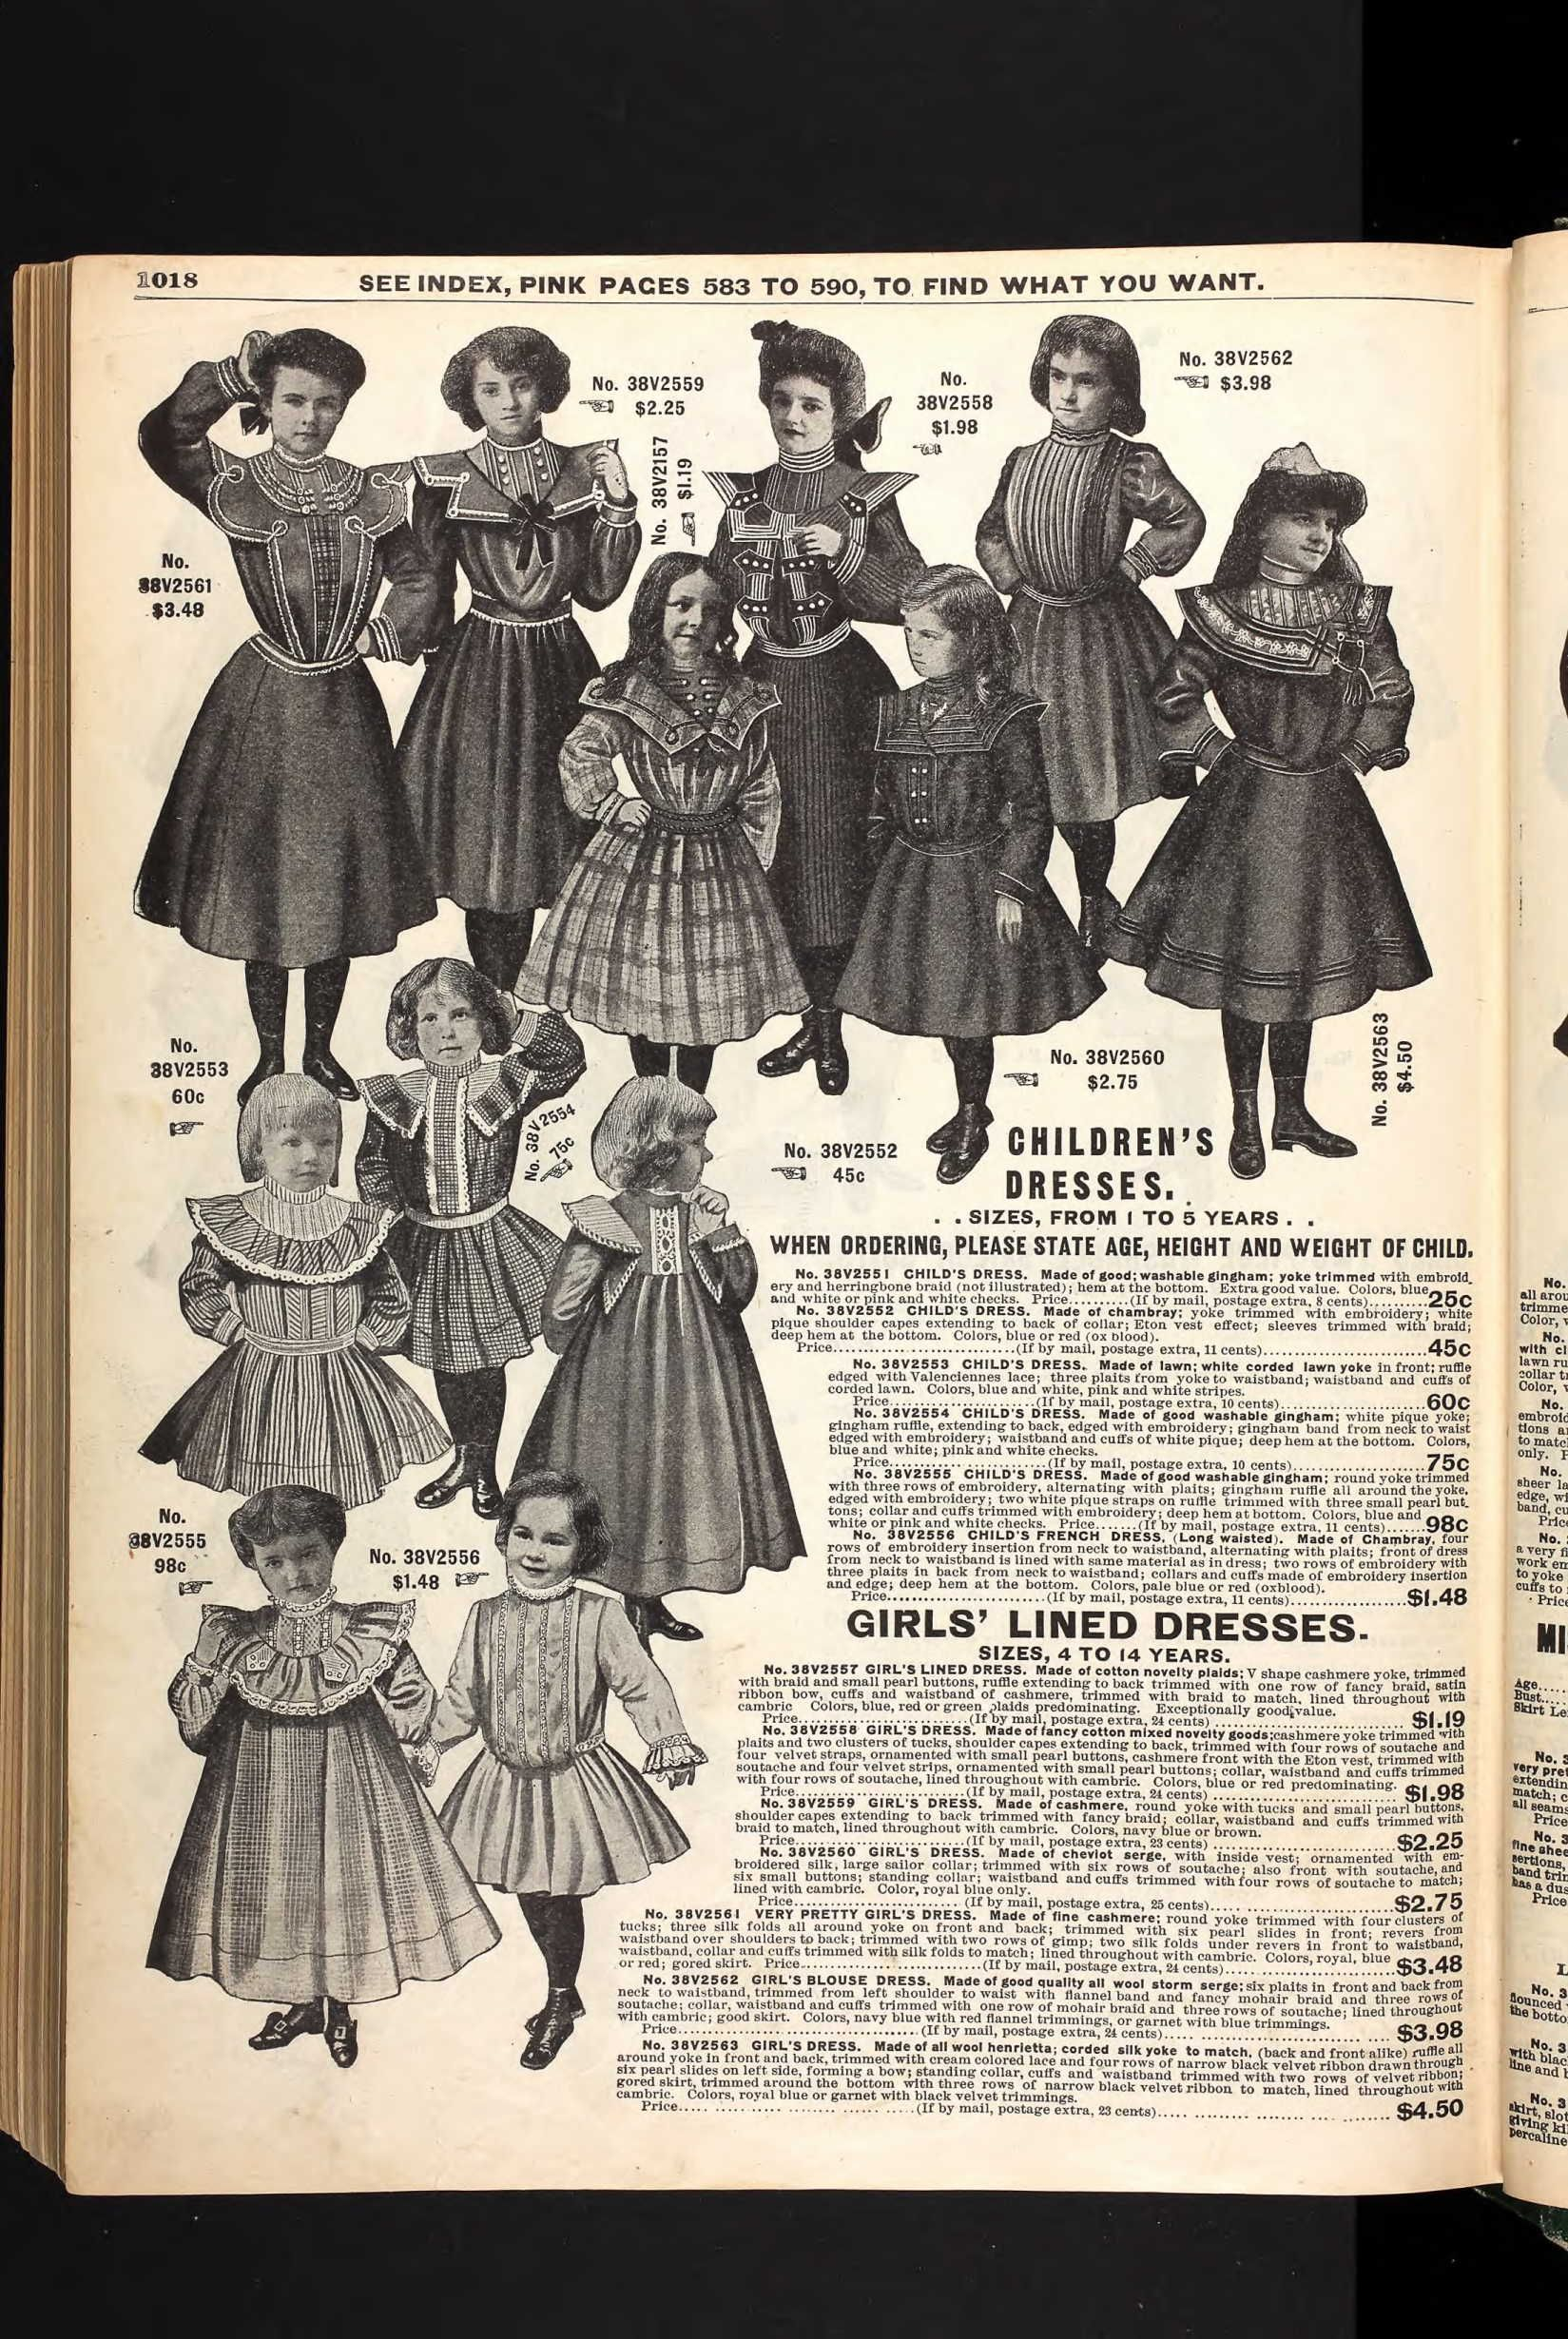 733421bfa0c3 1903 Girls dresses by Sears. | Vintage Fashion: Tots to Teens in ...